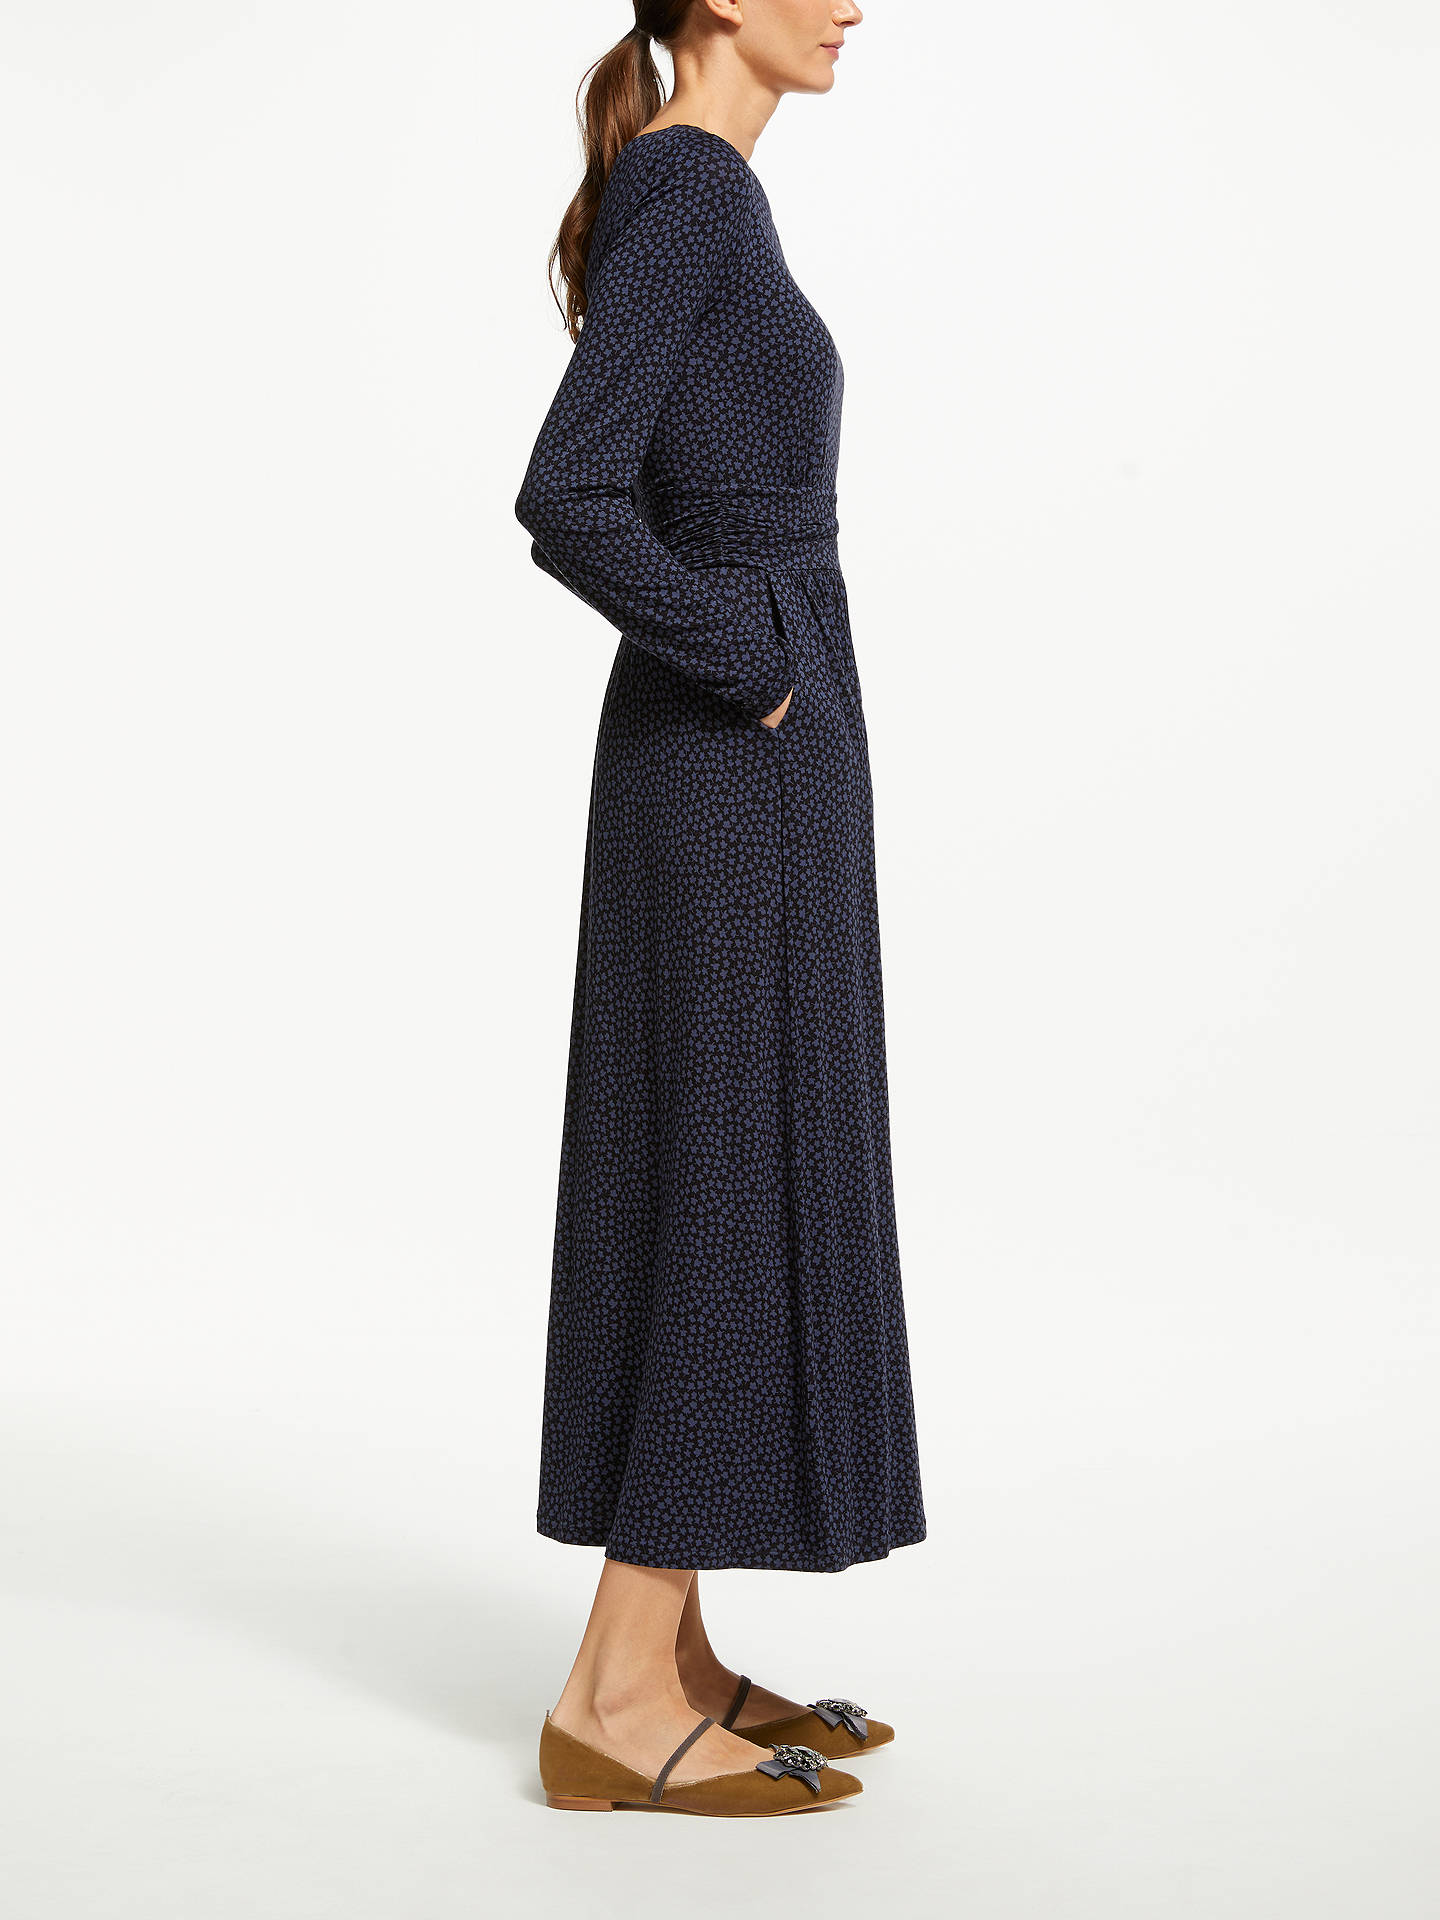 Buy Boden Lucille Jersey Dress, Black, 8 Online at johnlewis.com